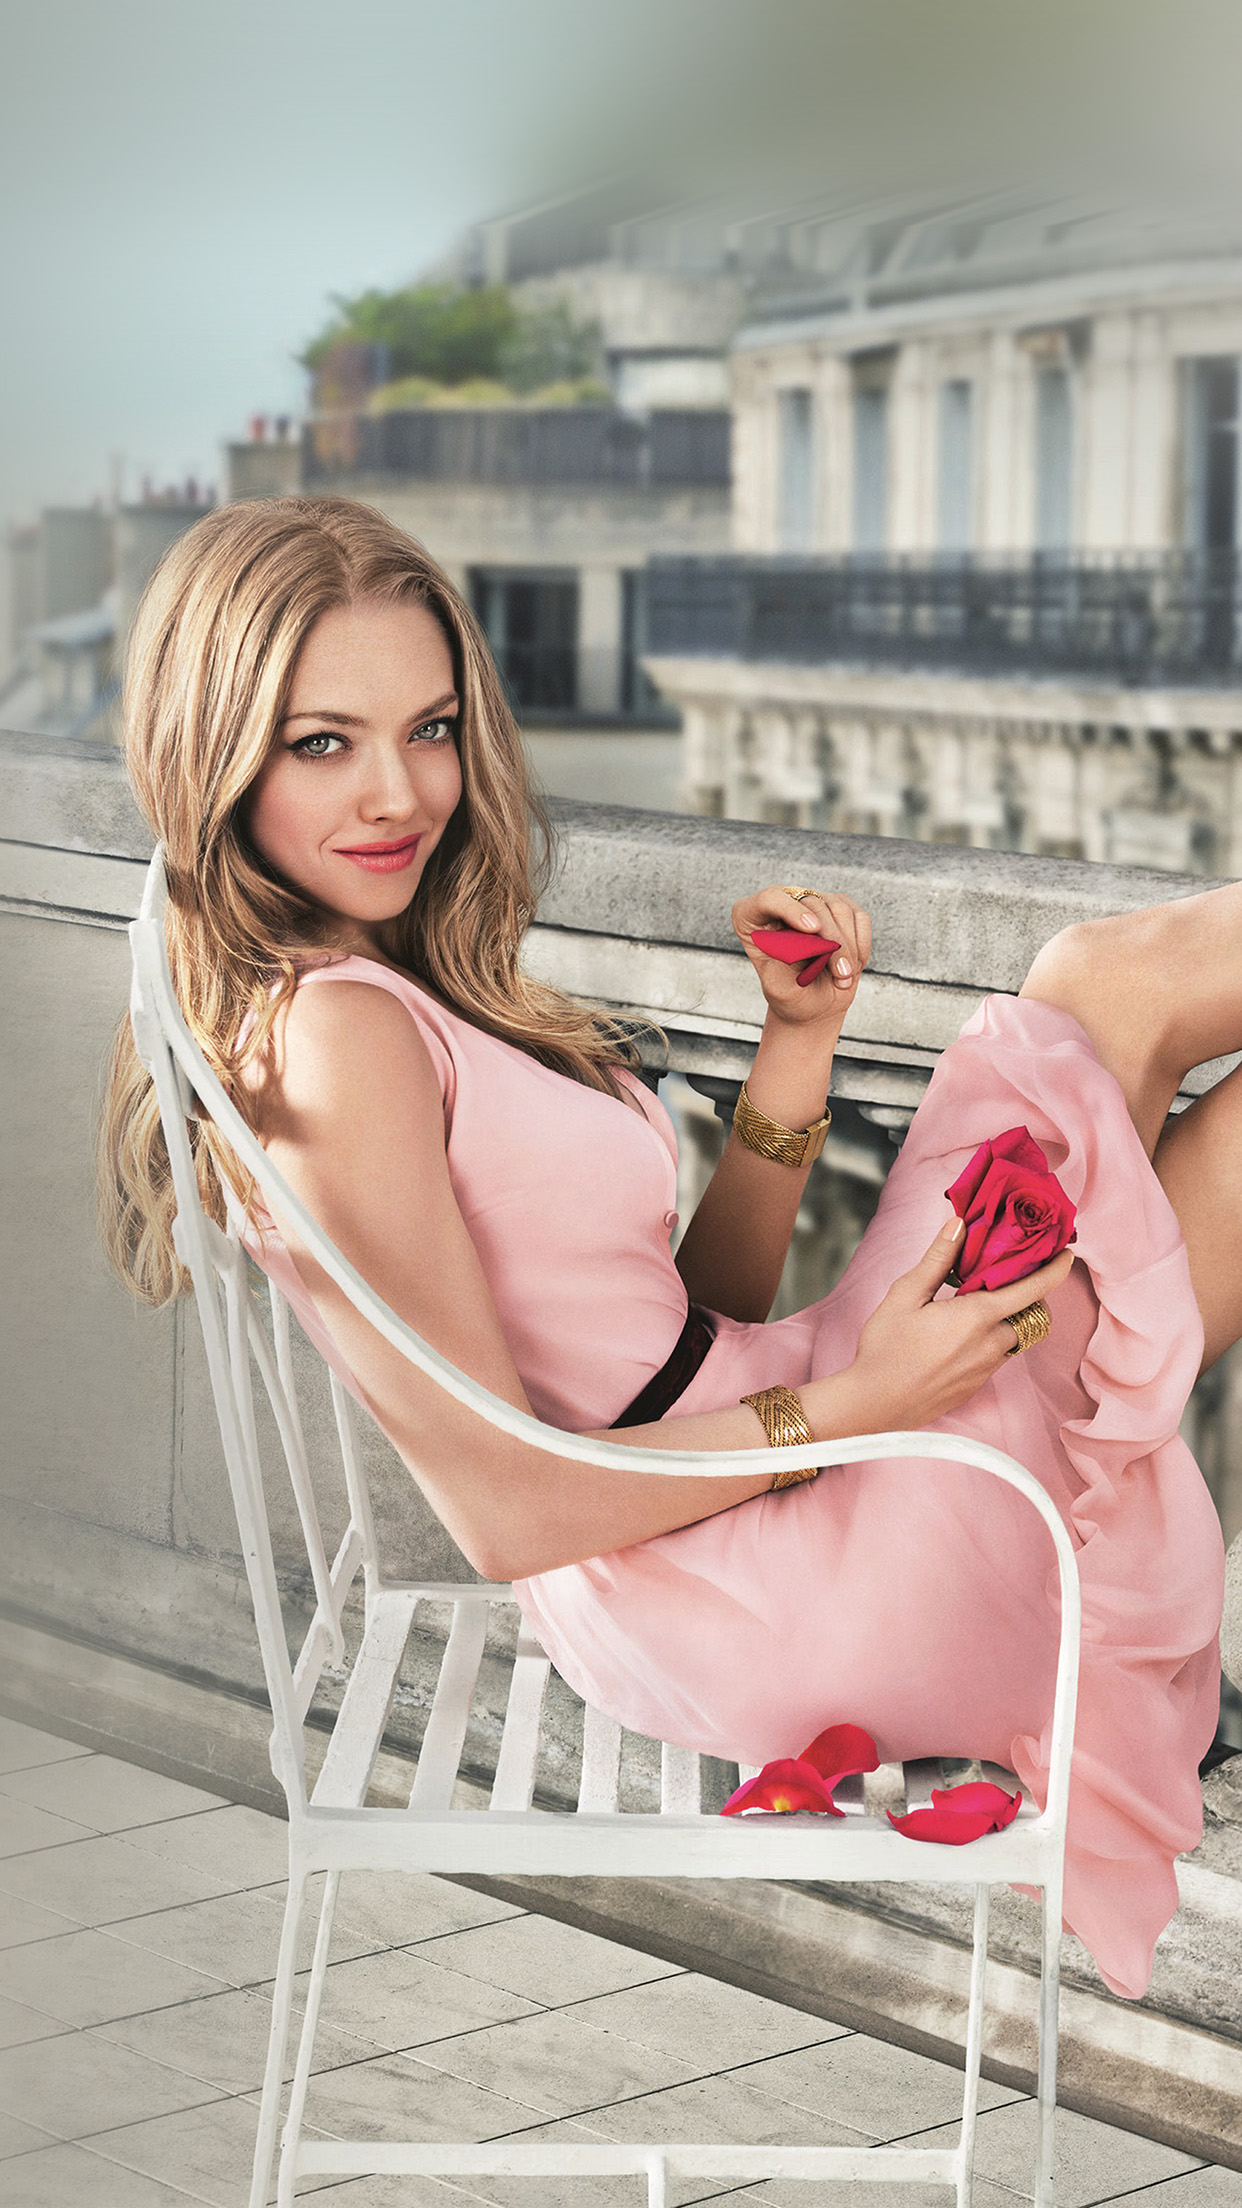 Amanda Seyfried Pink Celebrity Android wallpaper